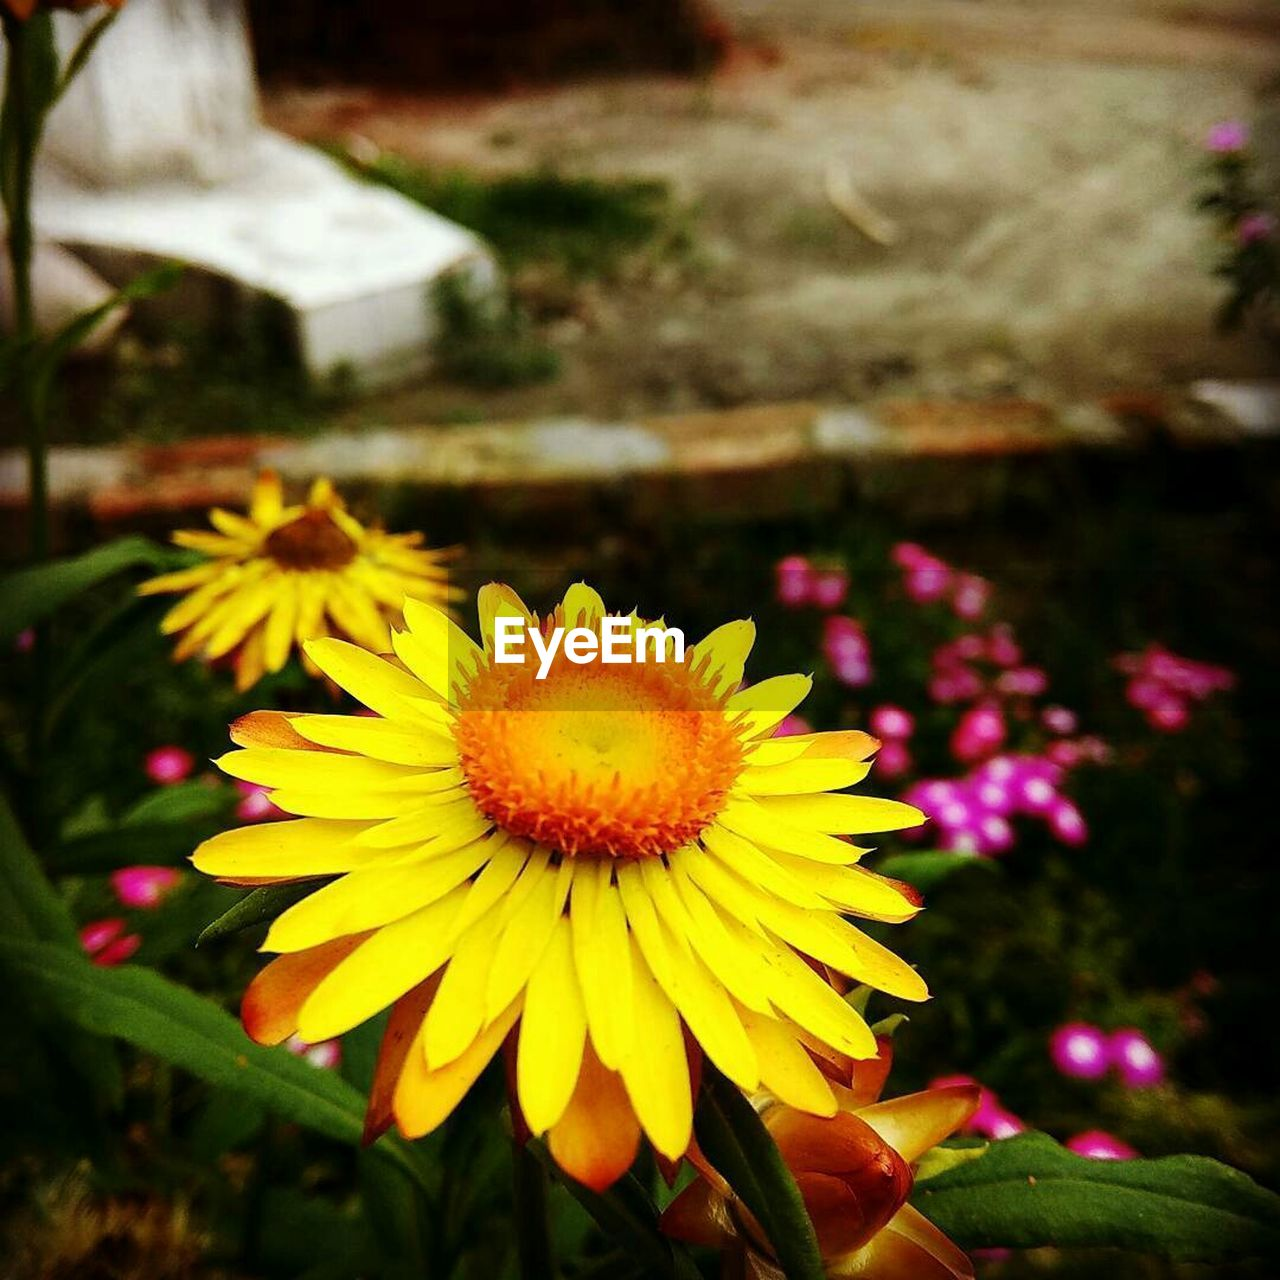 flower, yellow, fragility, beauty in nature, nature, petal, flower head, freshness, growth, plant, focus on foreground, no people, outdoors, close-up, day, blooming